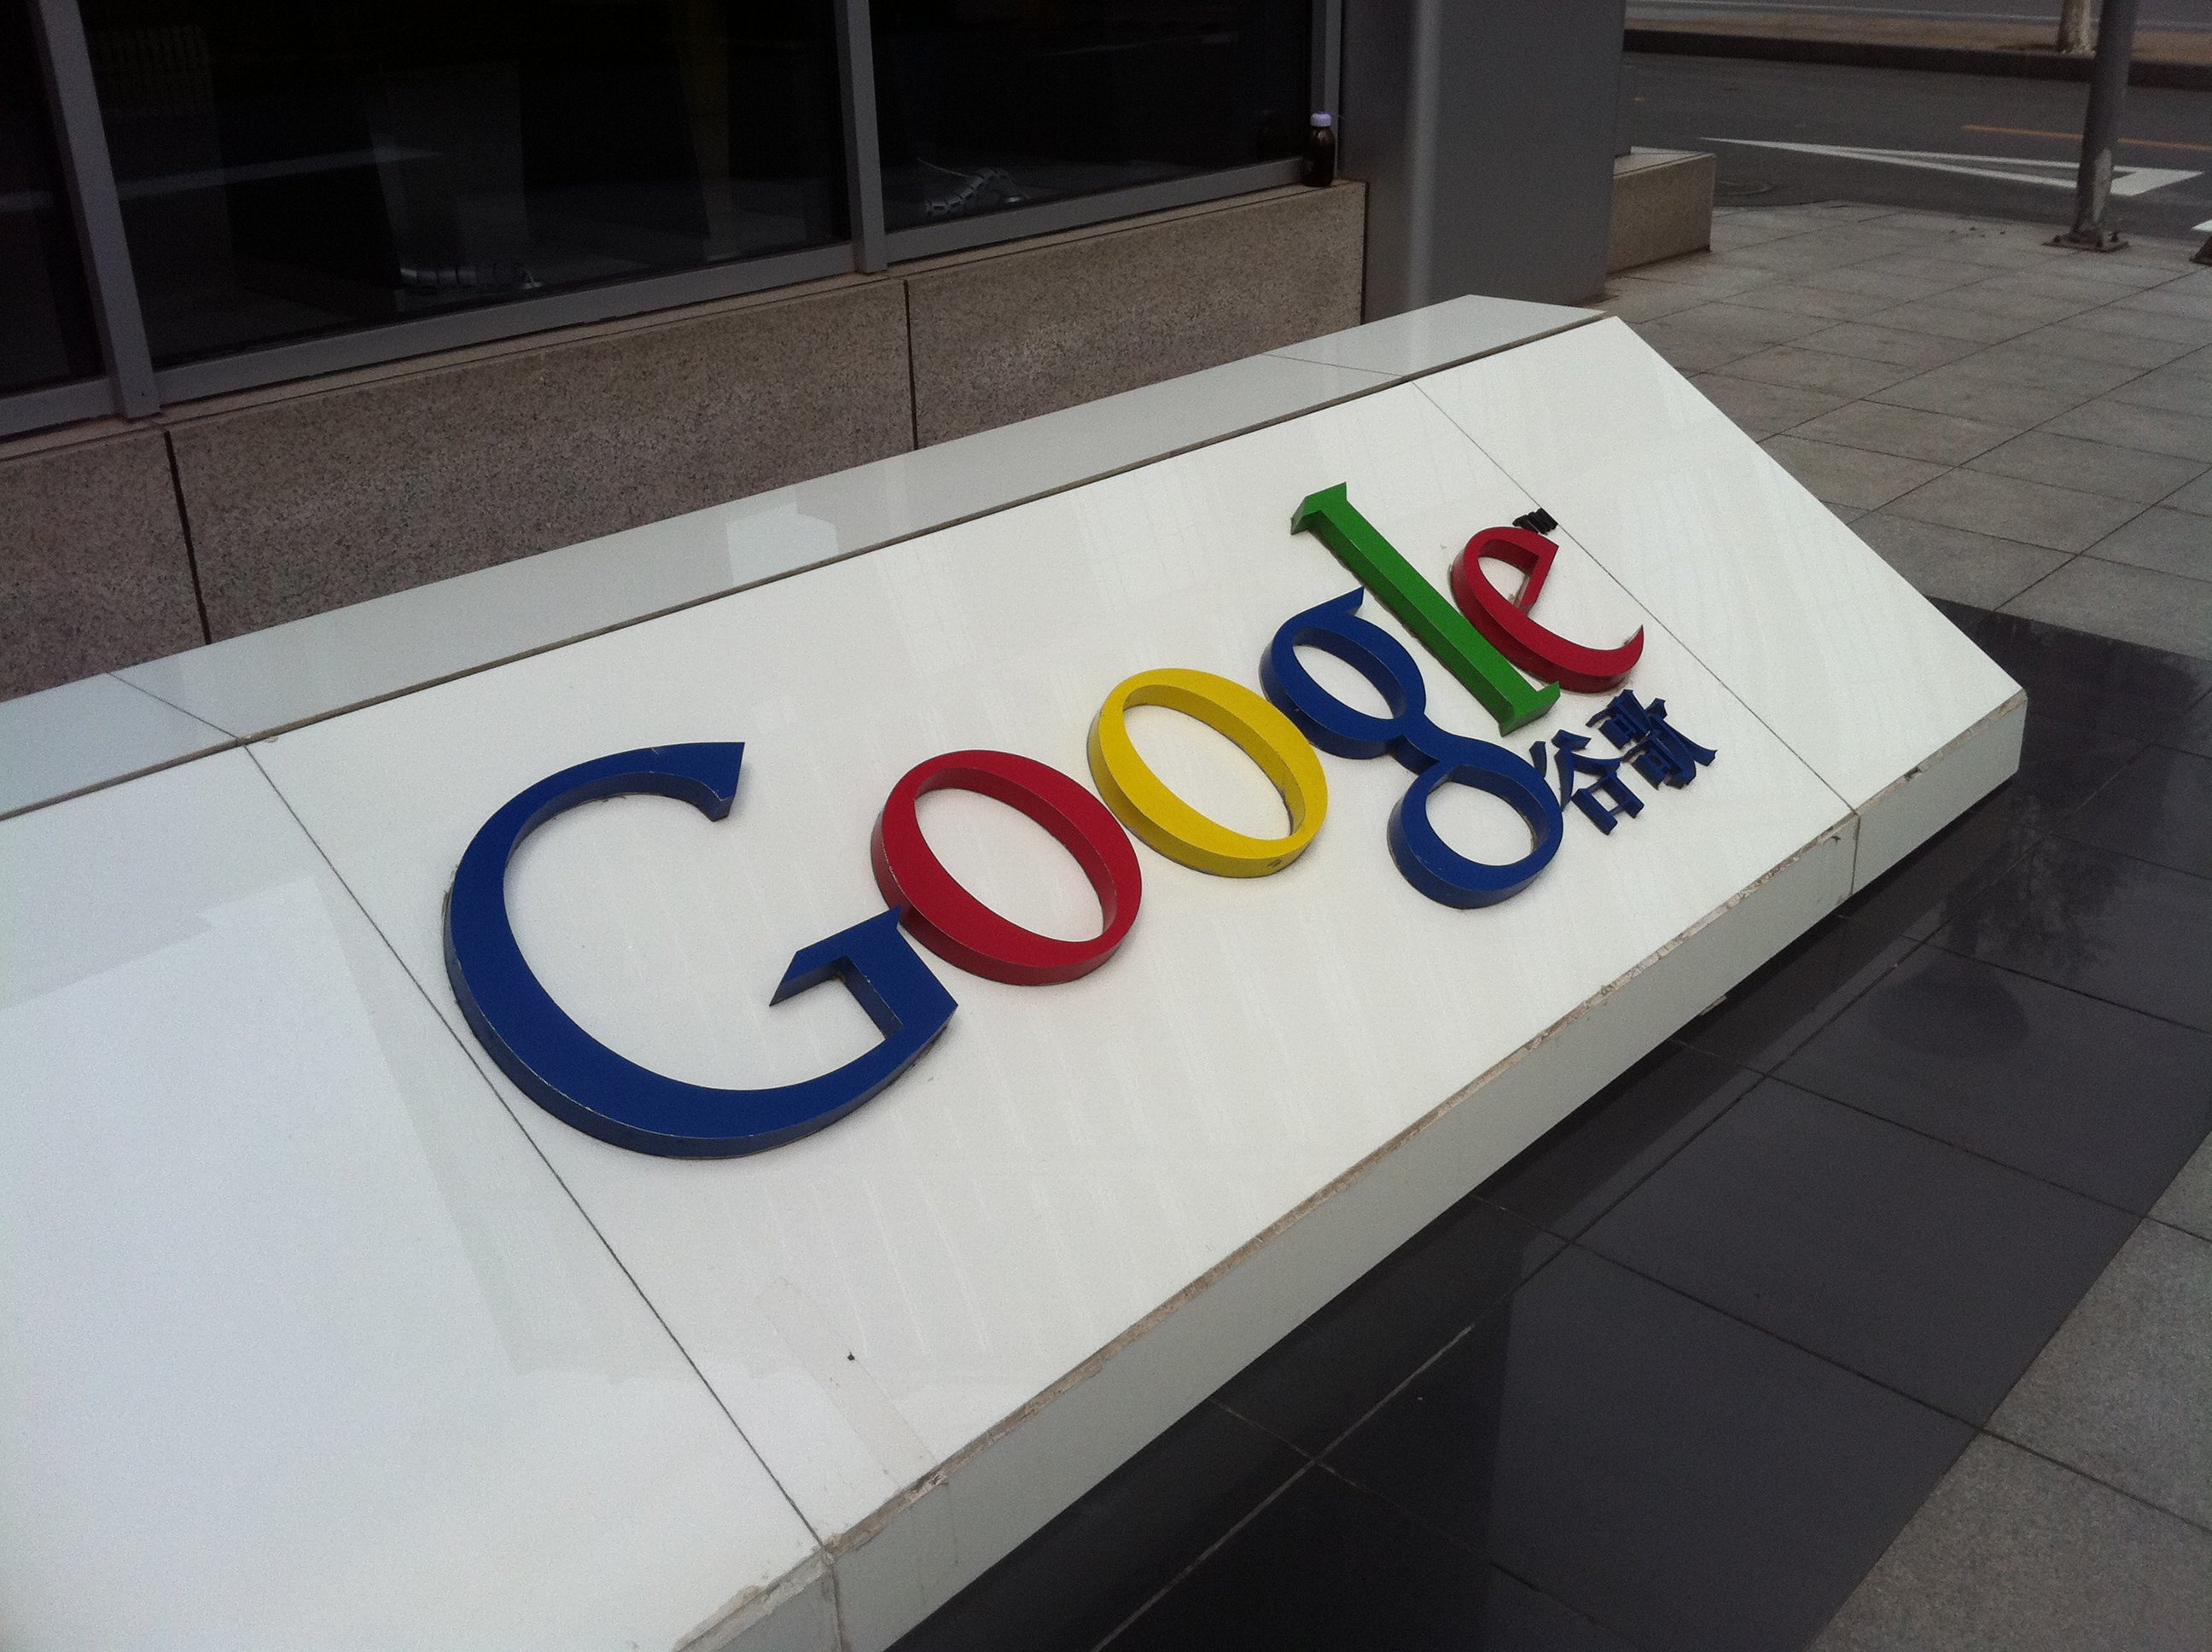 Googles Beijing office (Photo: bfishadow on Flickr)